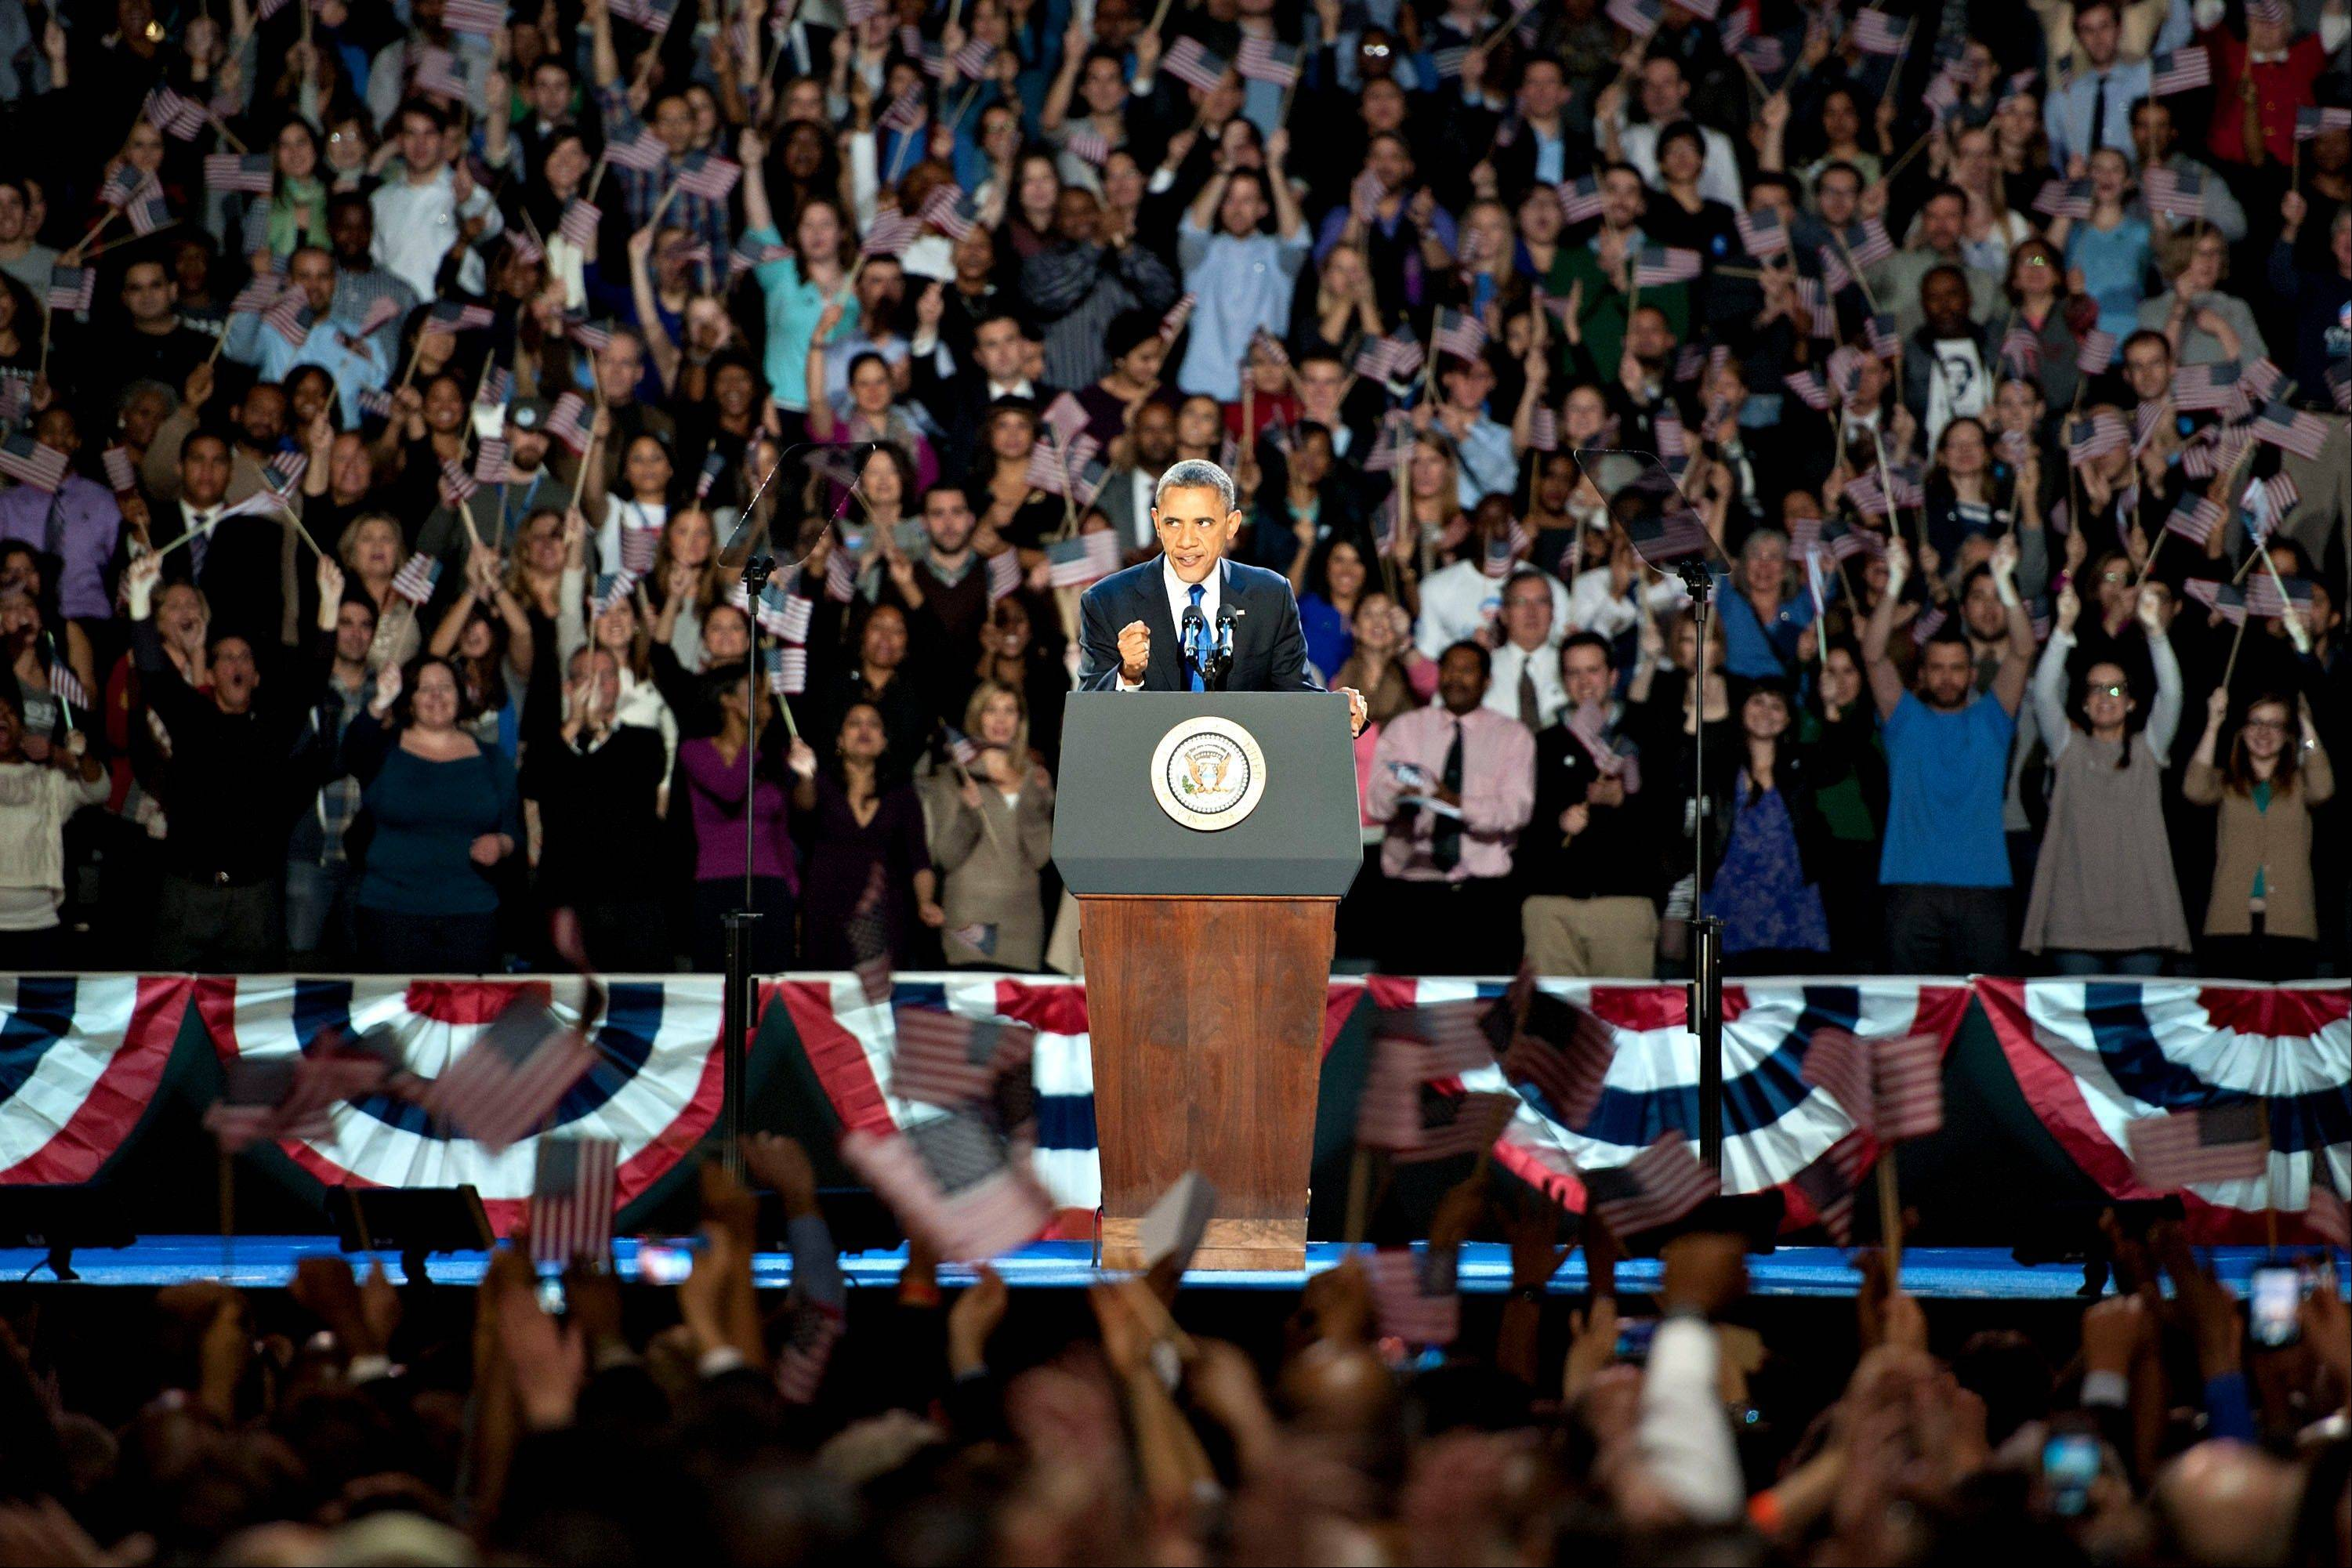 U.S. President Barack Obama makes an acceptance speech during an election night rally in Chicago.